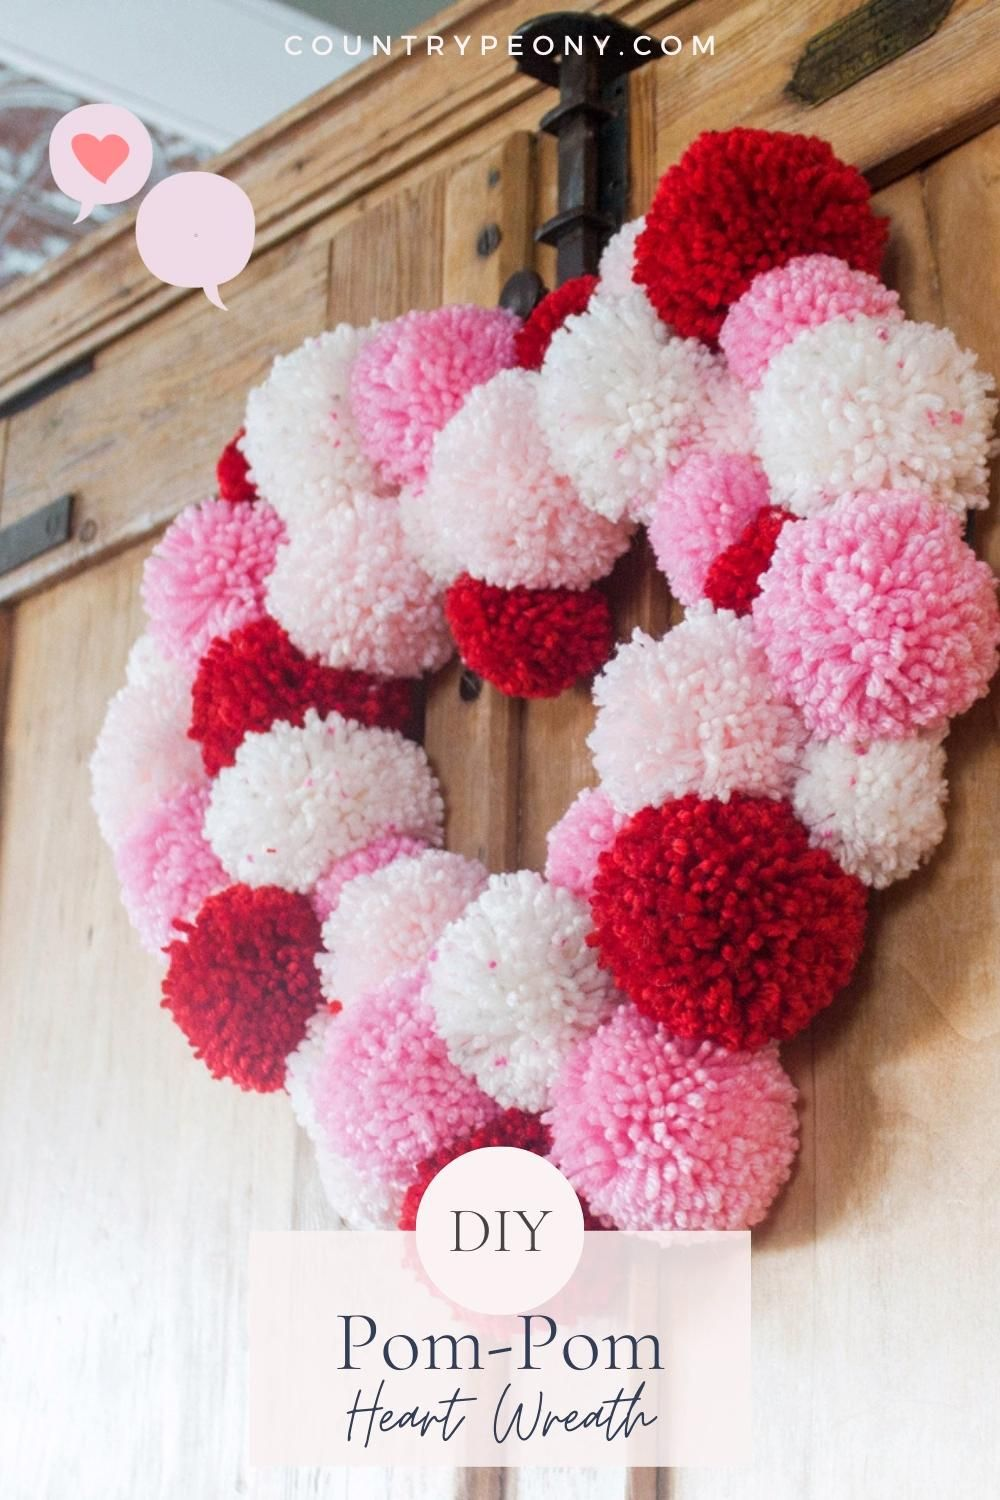 How to Make Your Own Pom-Pom Heart Wreath - Country Peony Blog